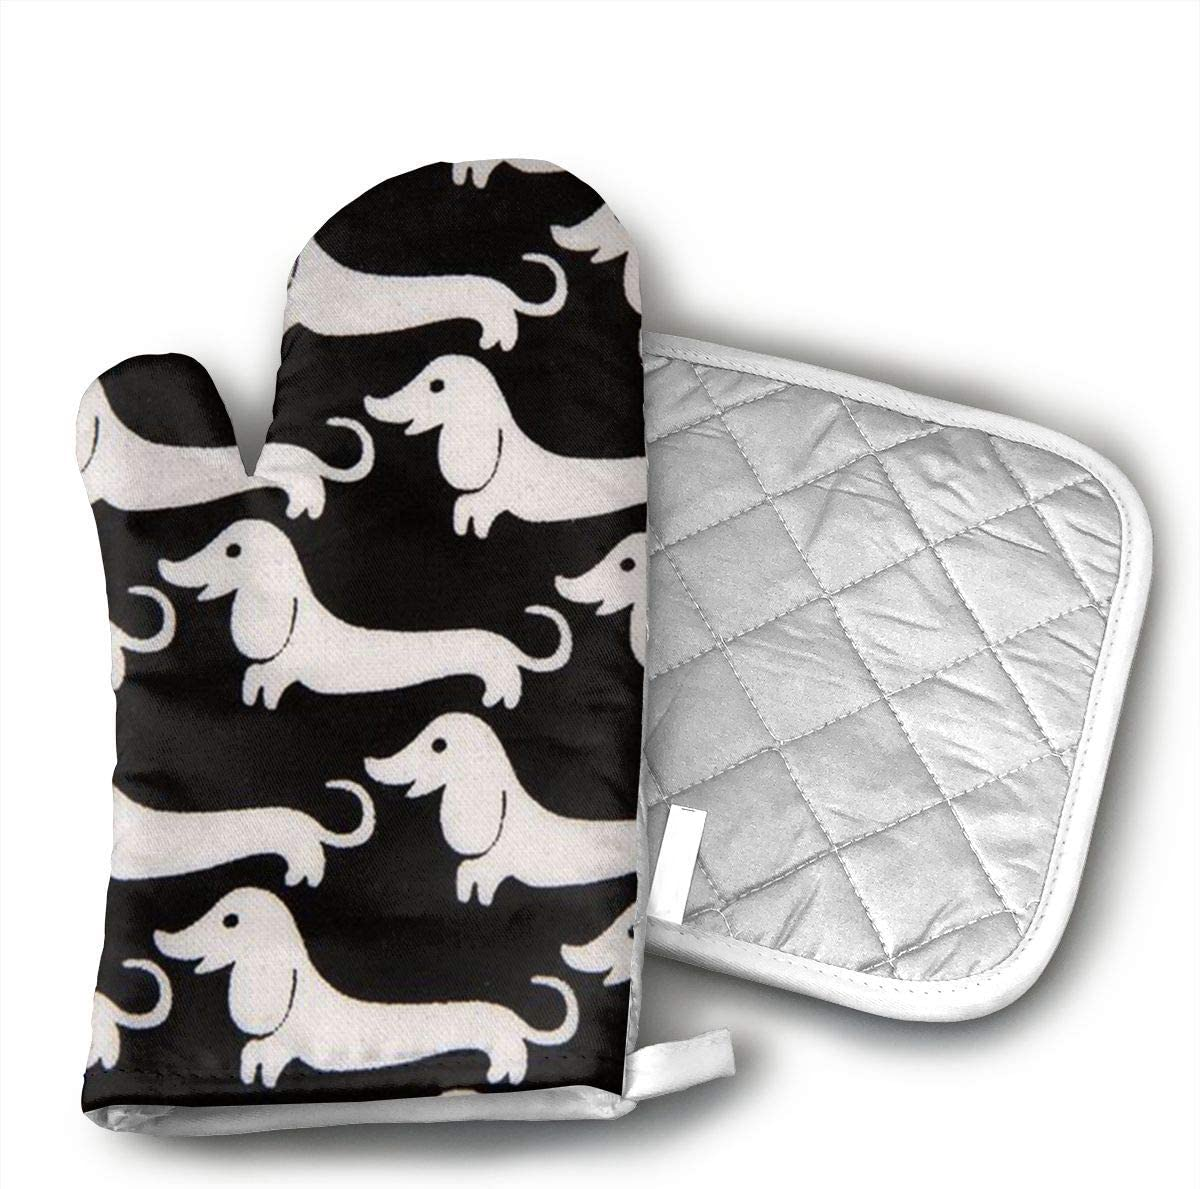 White Wiener Dog Fabric Heat Resistant Oven Mitts + Cotton Pot Holders Non Slip Oven Gloves for Kitchen Cooking Baking, BBQ, Grilling Machine Washable